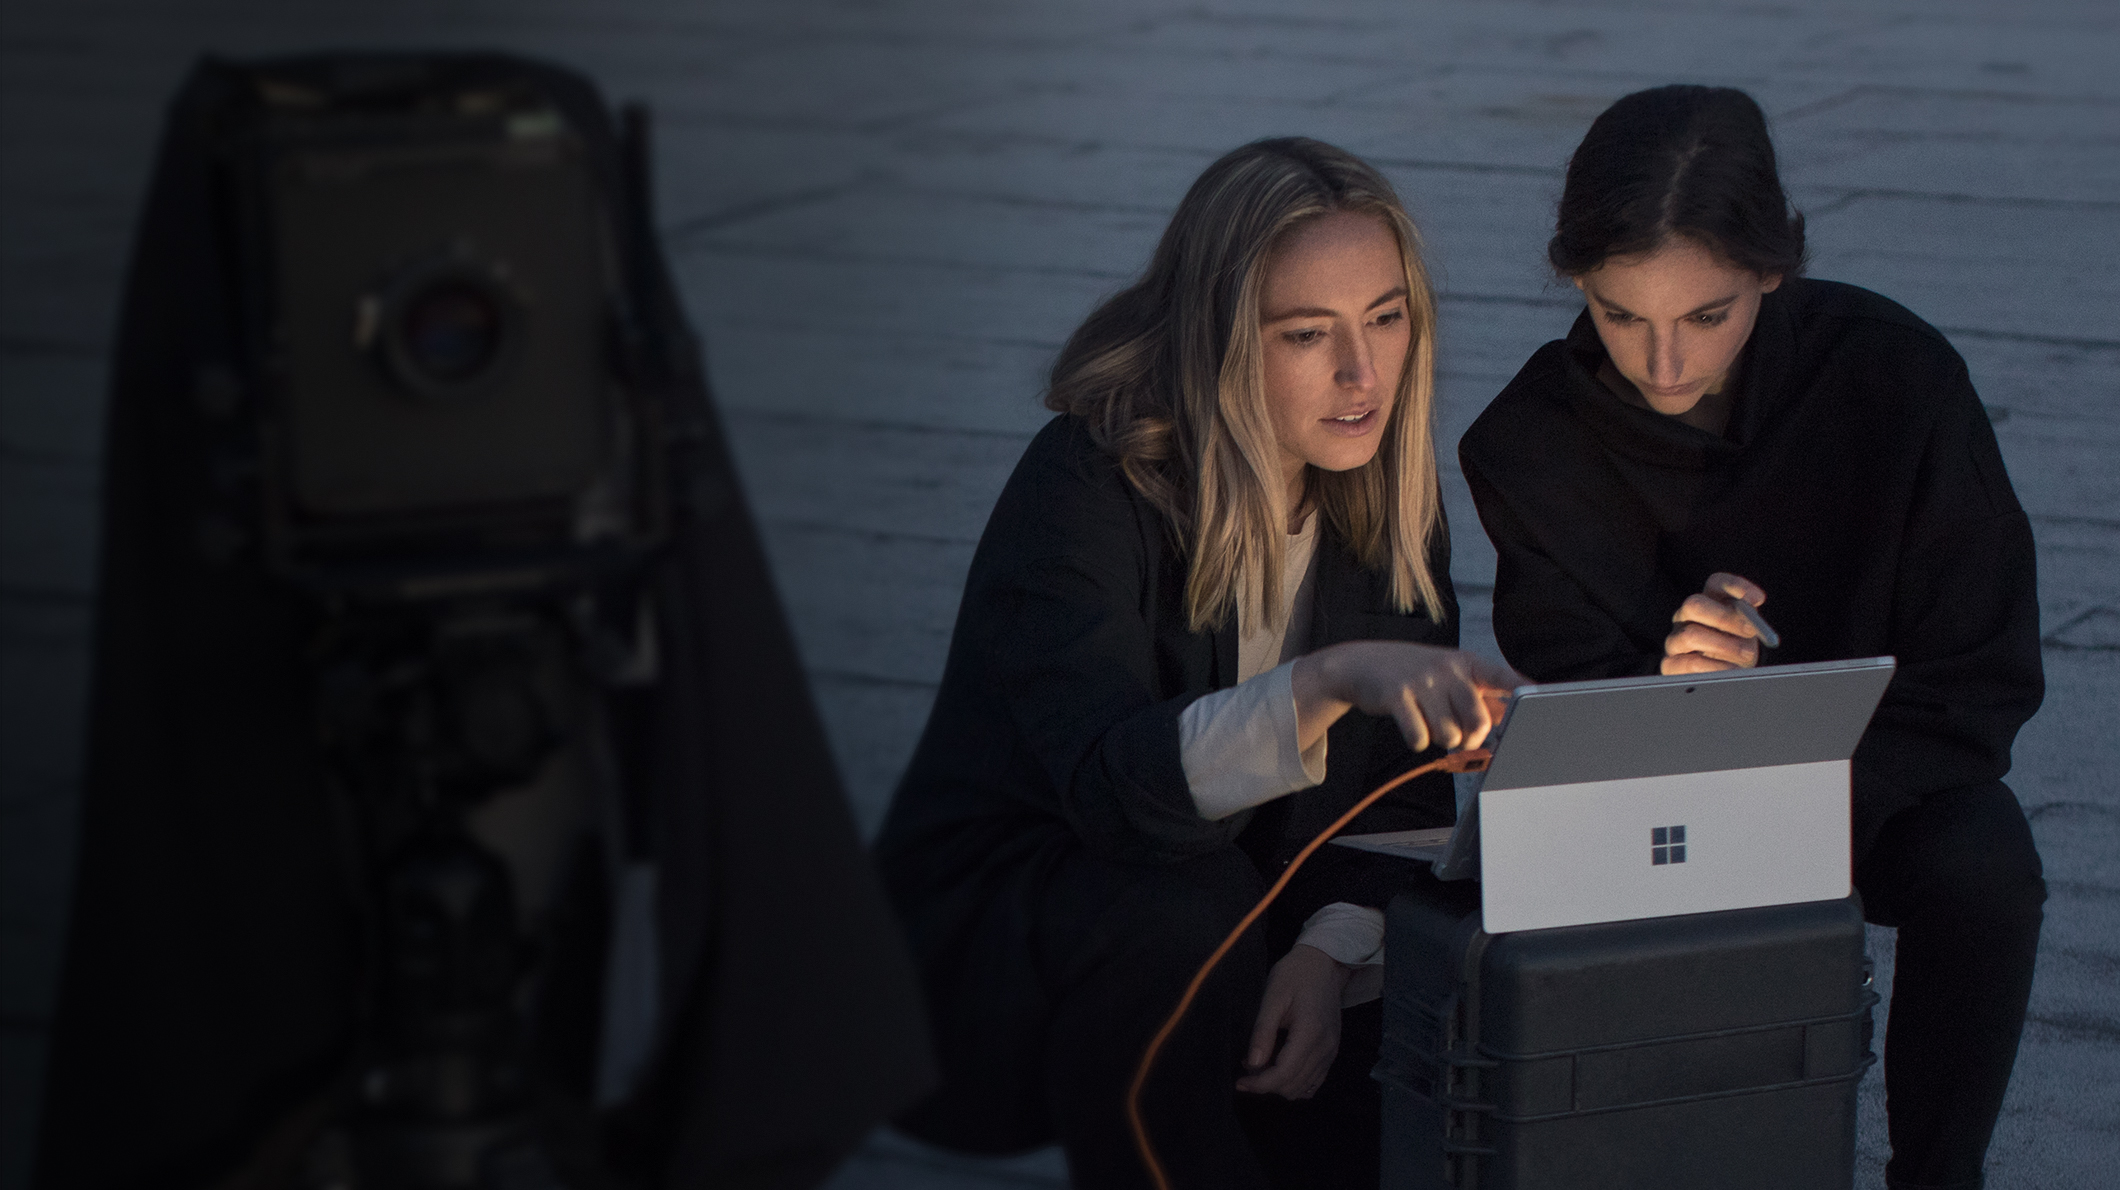 Two women look at a Surface Pro